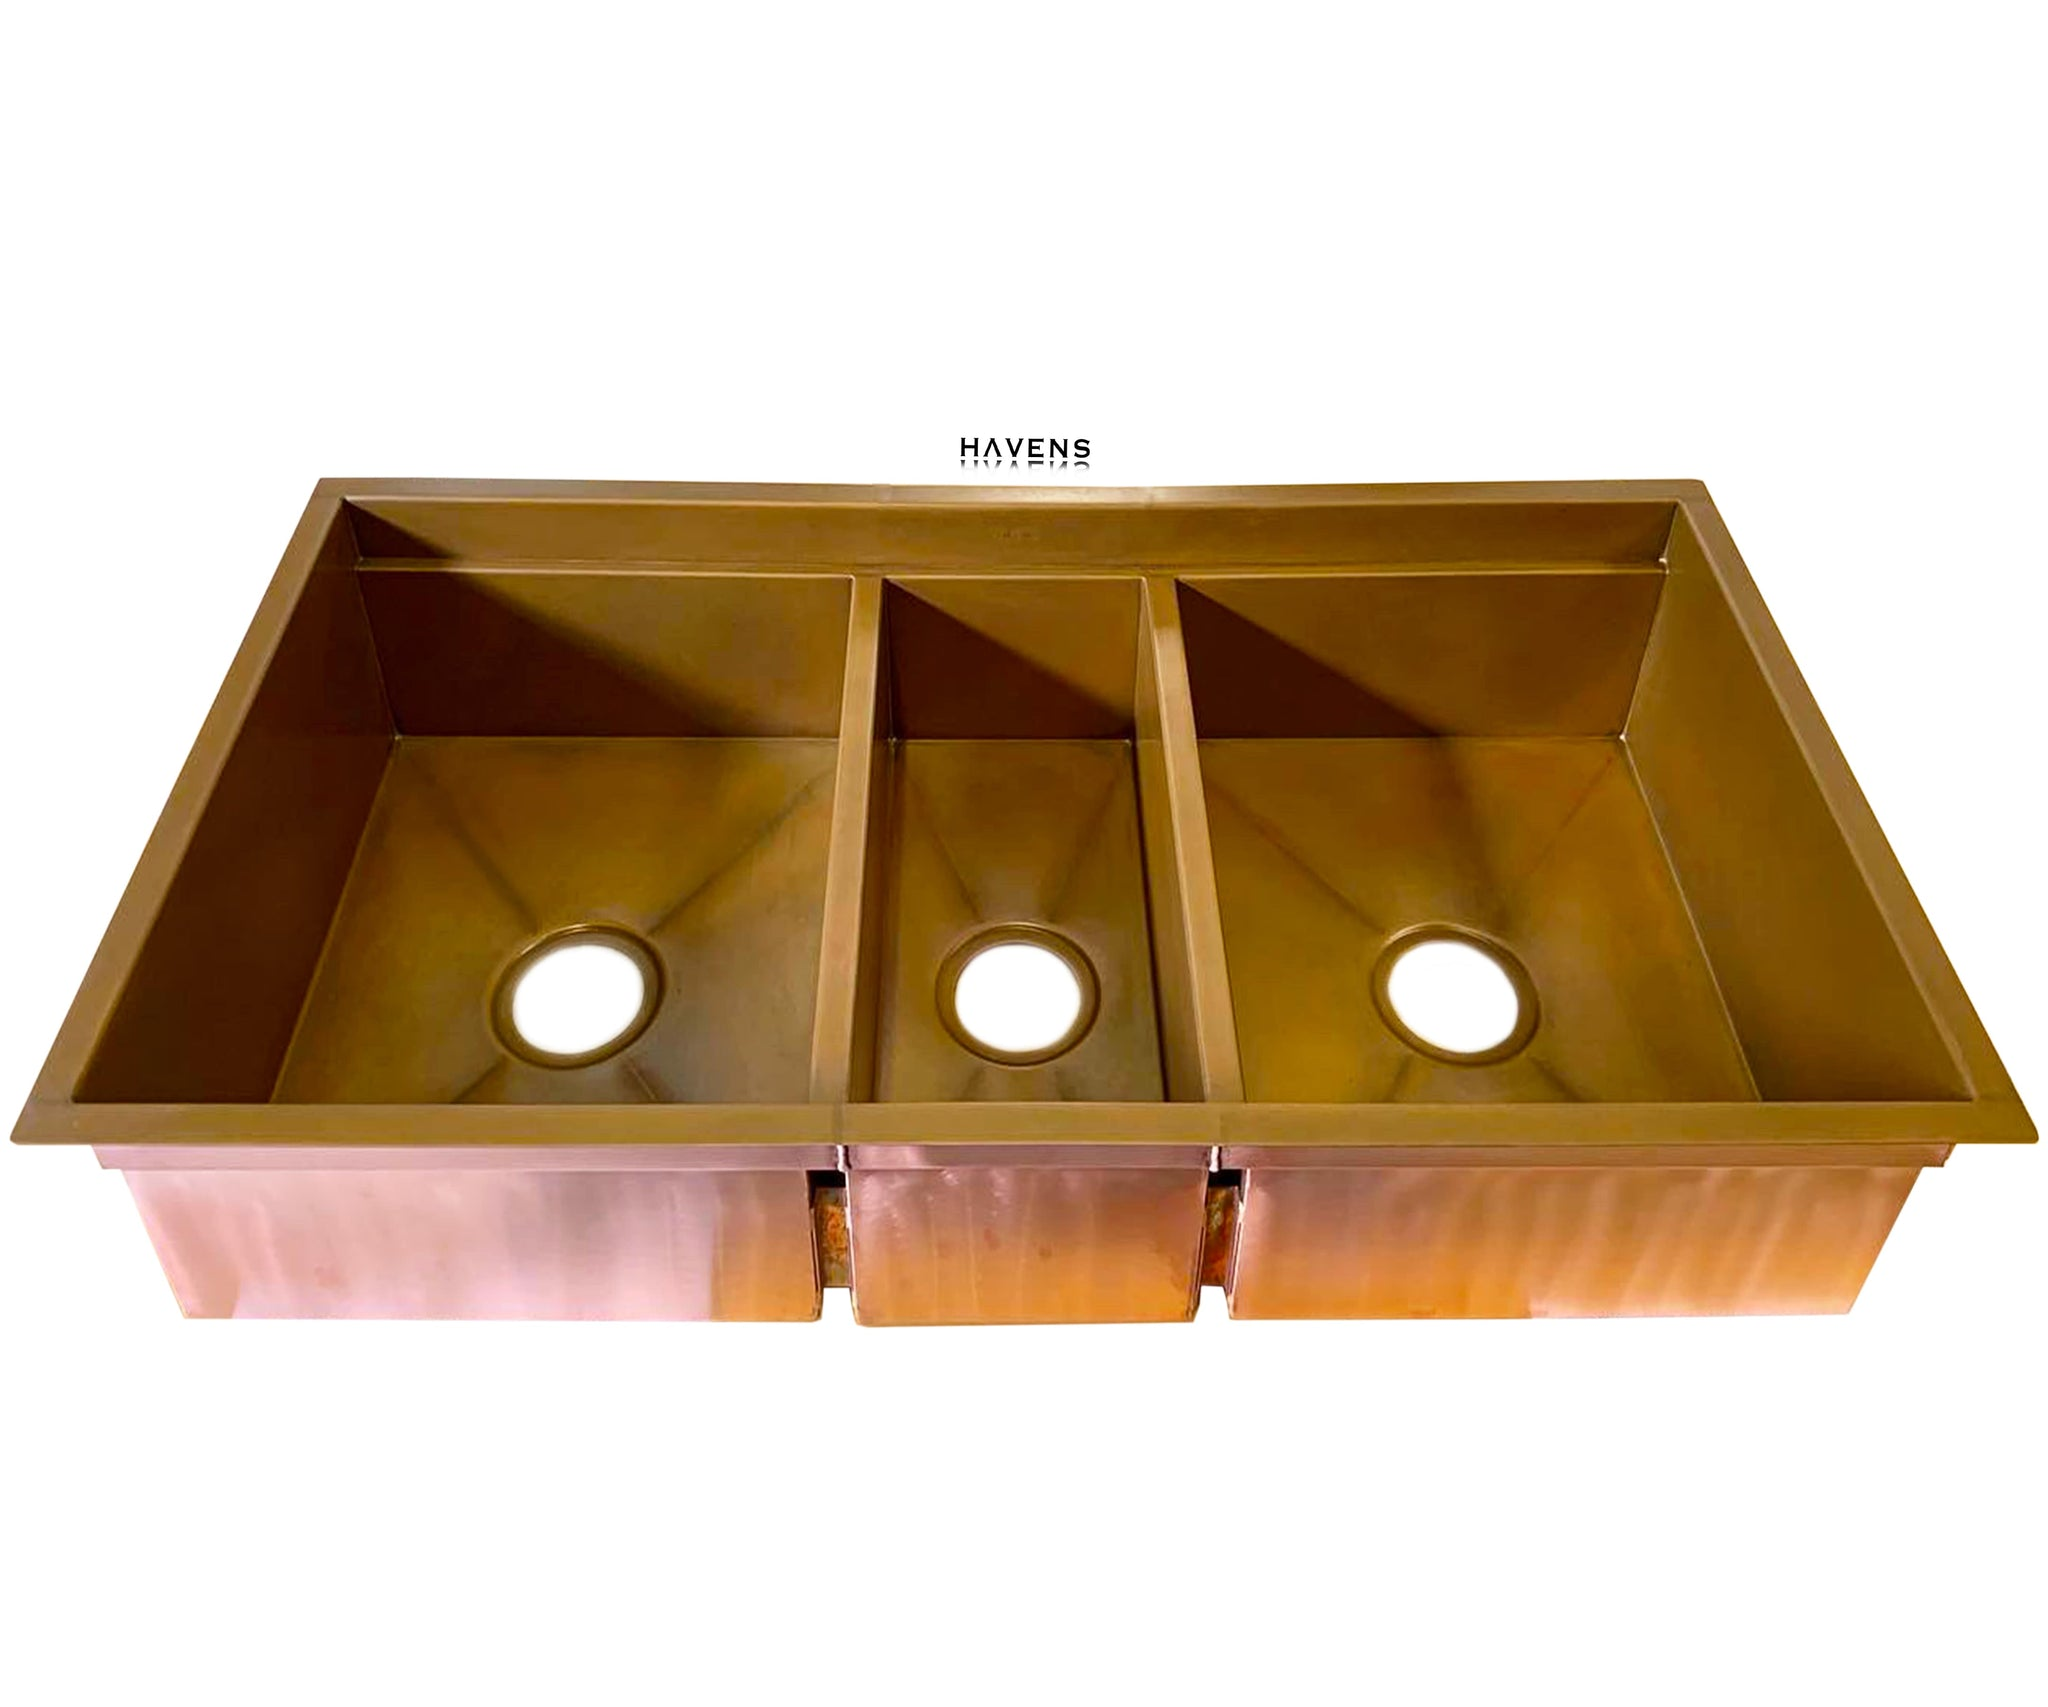 Trinity Triple-Bowl Undermount Sink - Copper